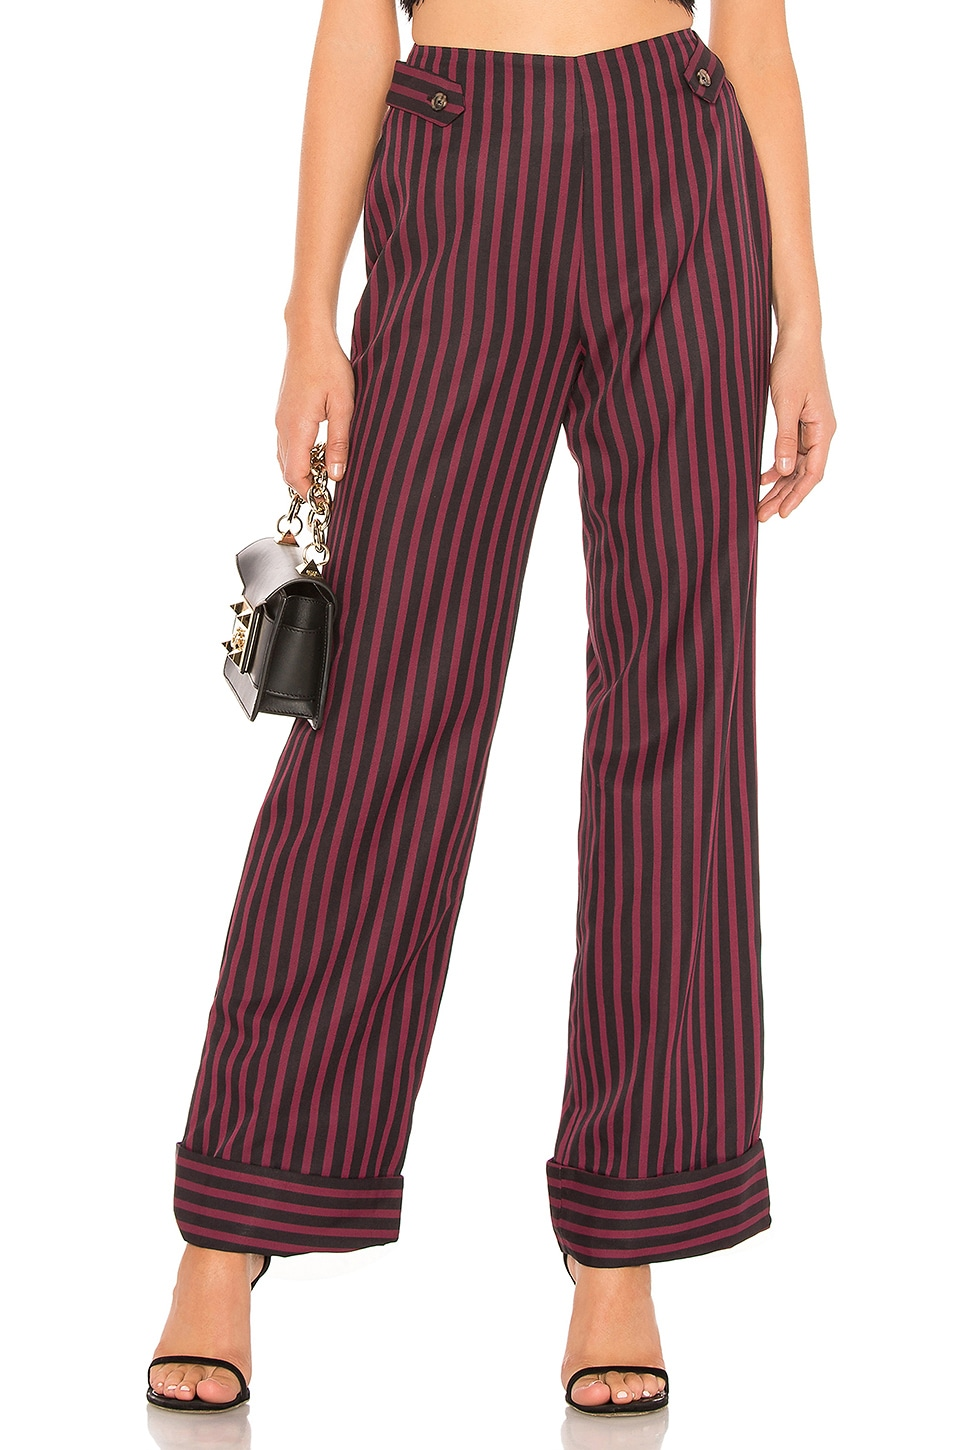 The Rosalie Pant